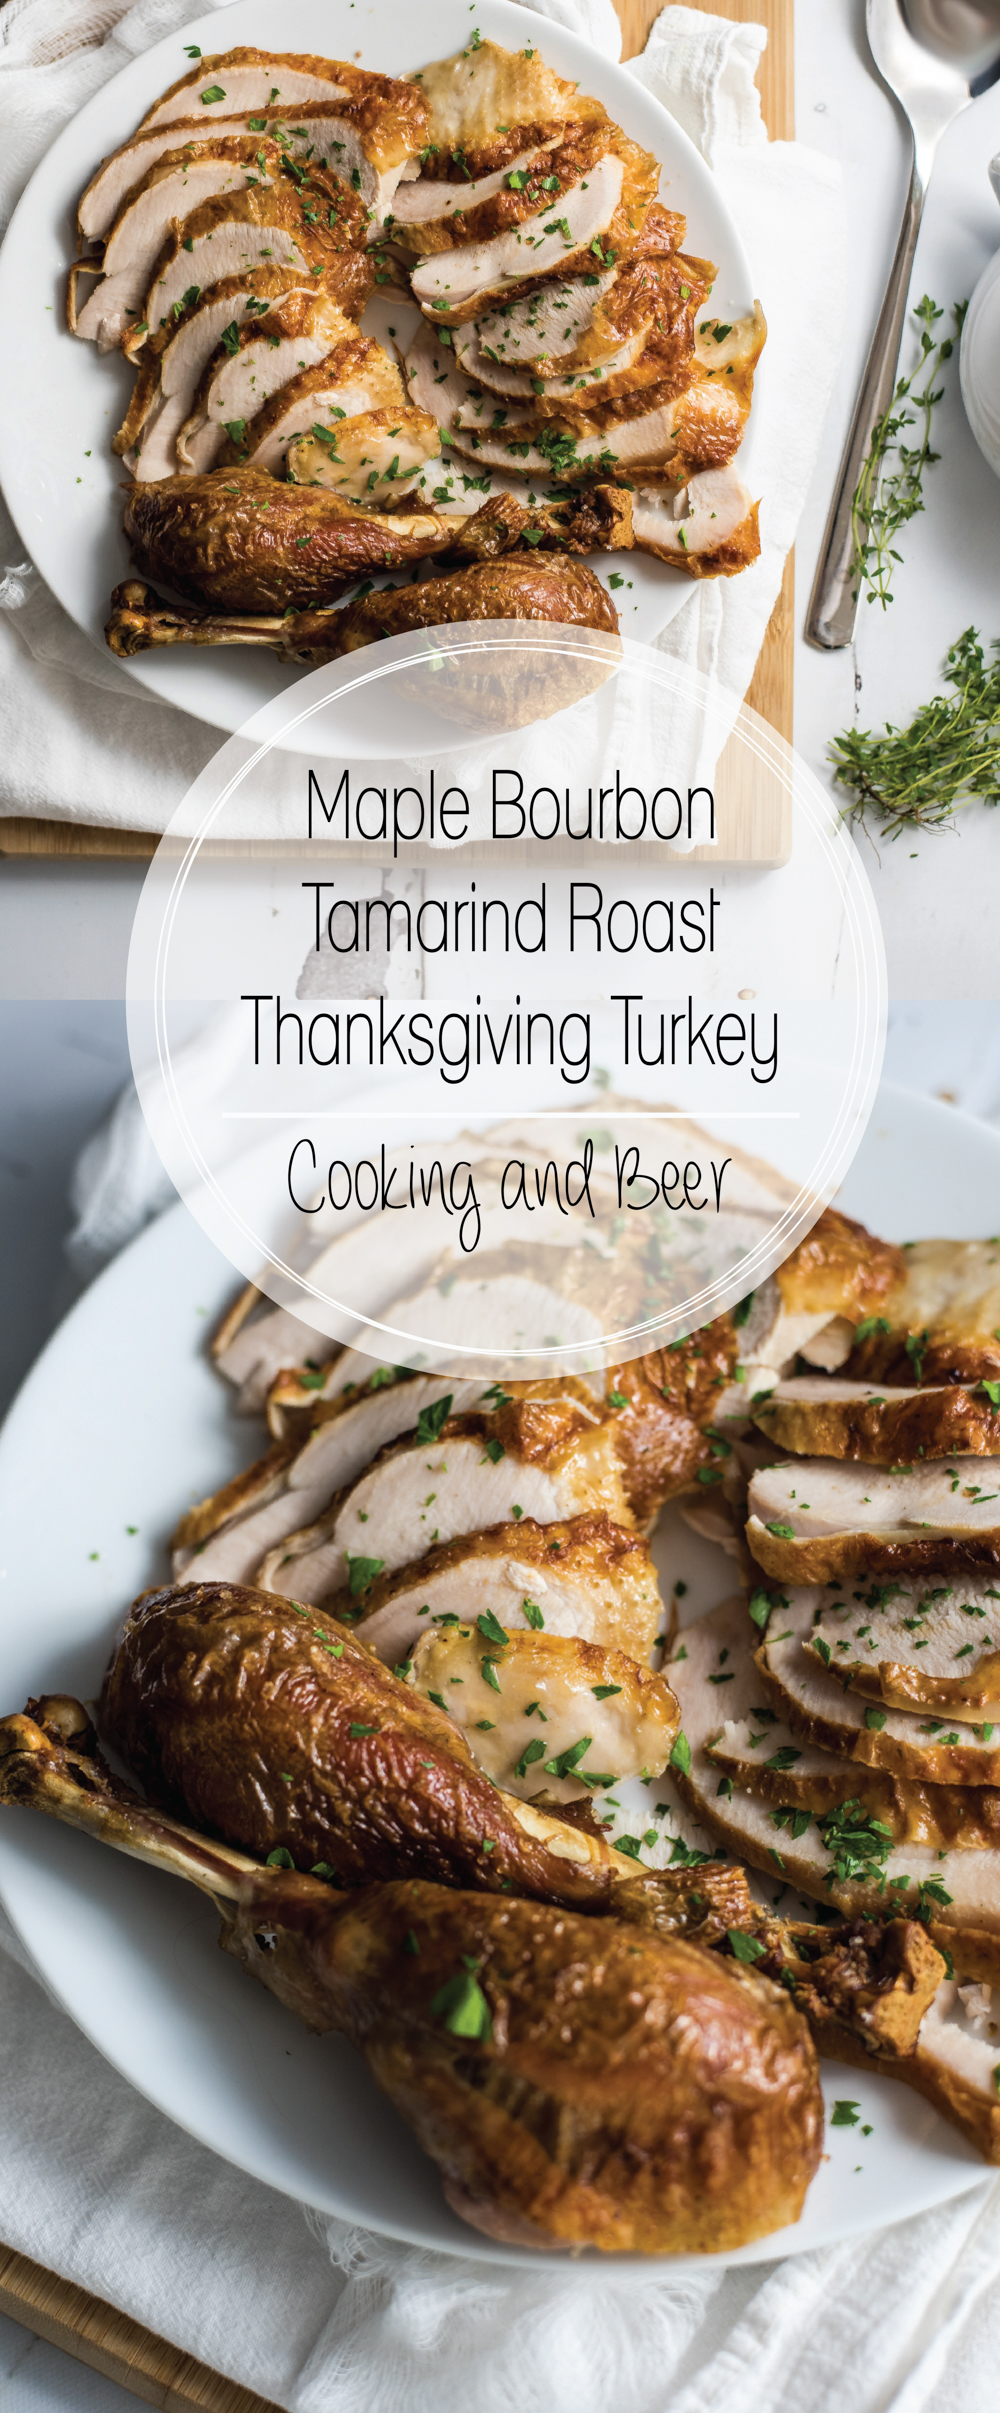 Maple bourbon tamarind roast Thanksgiving turkey is the perfect way to spruce up your traditional Thanksgiving Day spread.